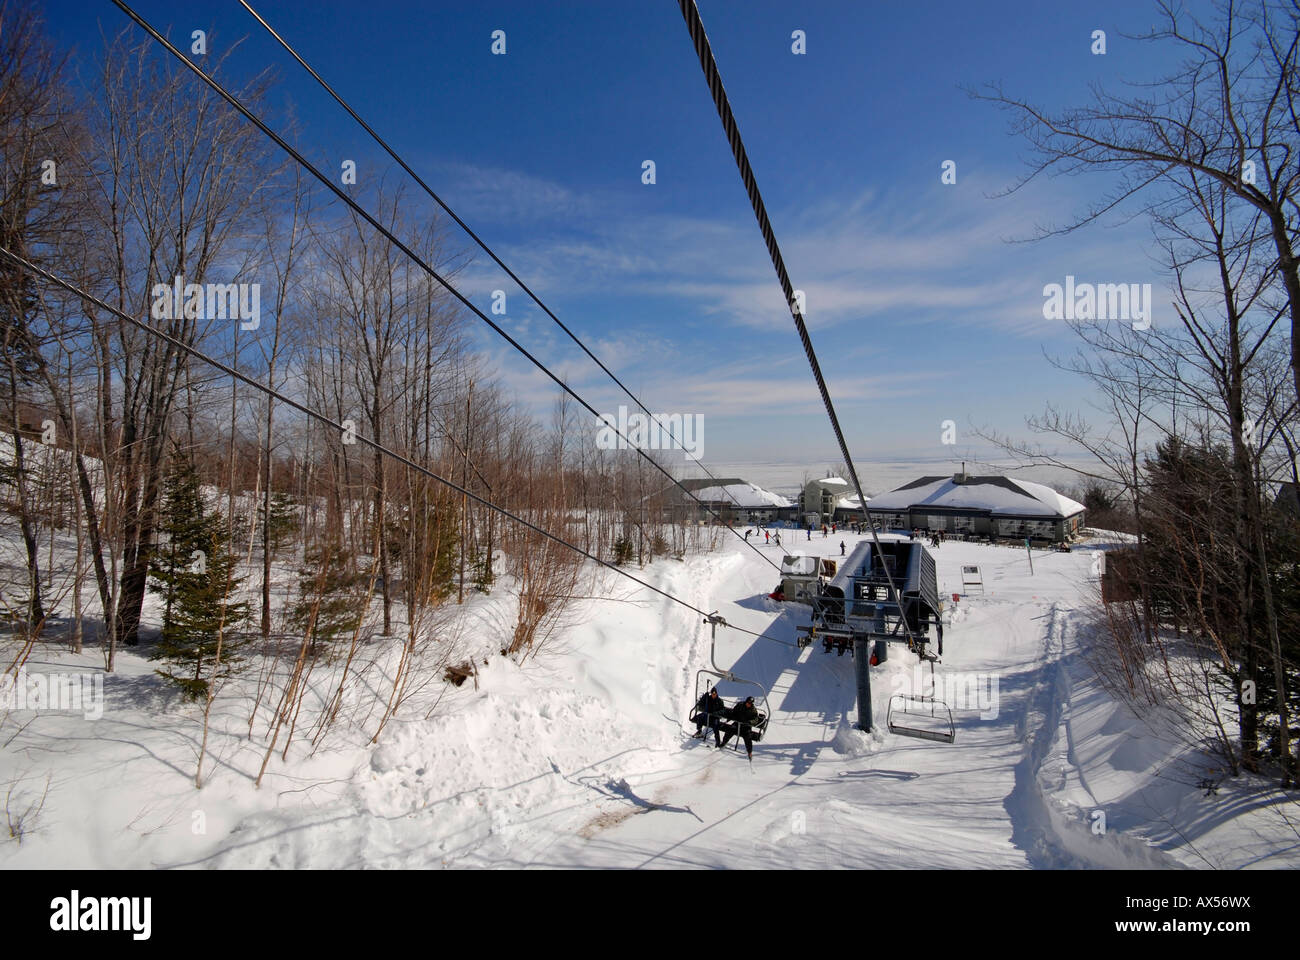 buy ski lift chair wood rocking chairs for porch view from the le massif resort region